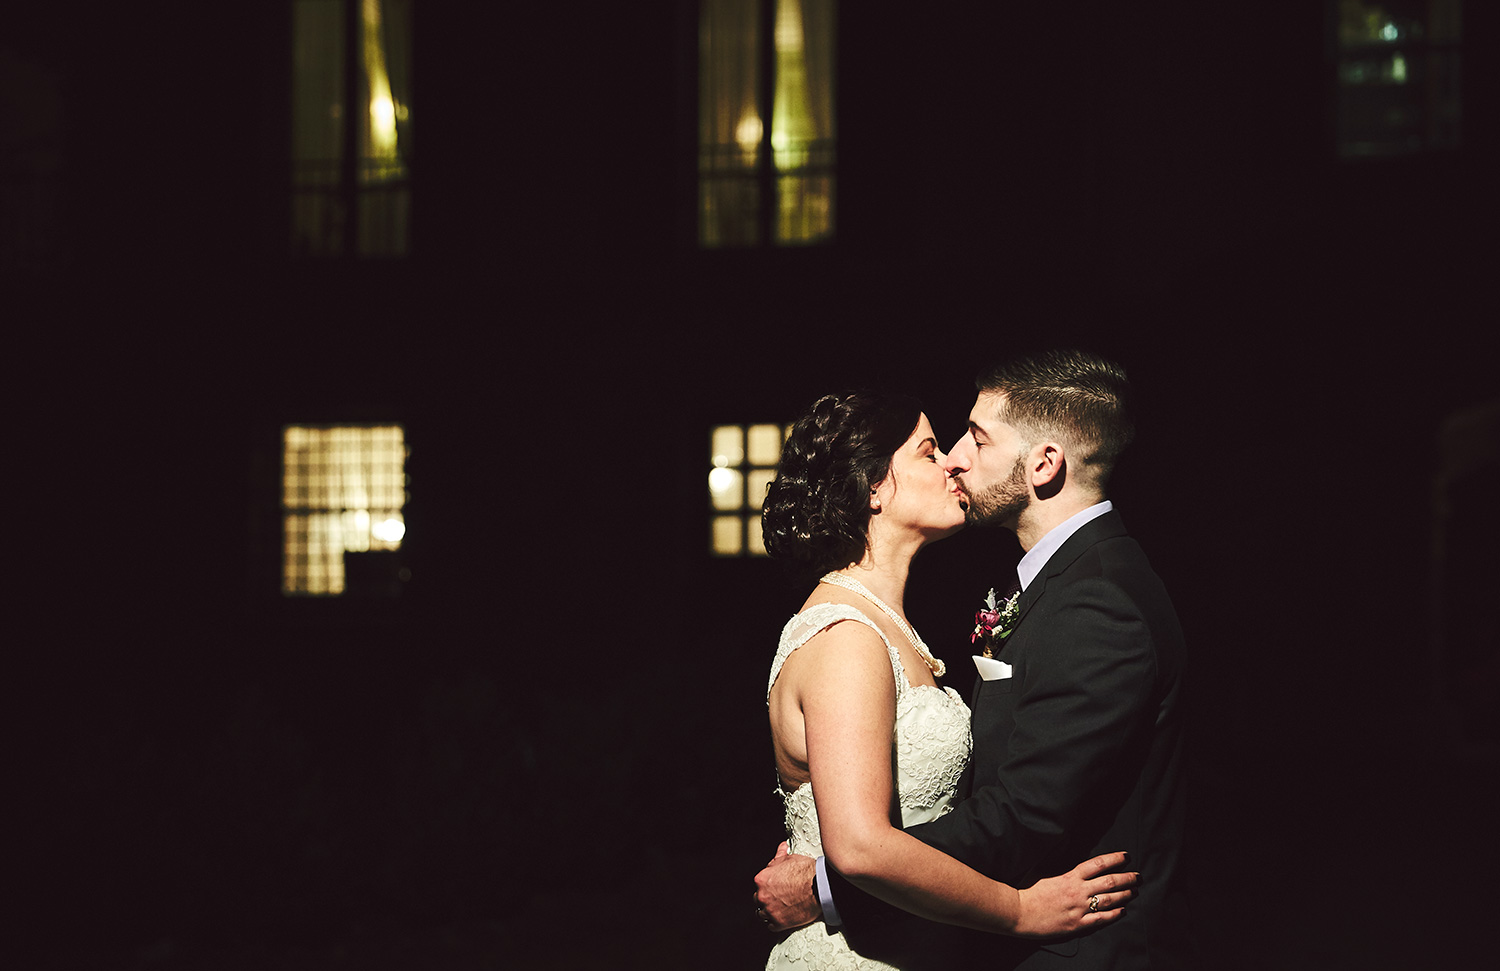 161119_ArrowParkLake&LodgeWedding_By_BriJohnsonWeddings_0159.jpg